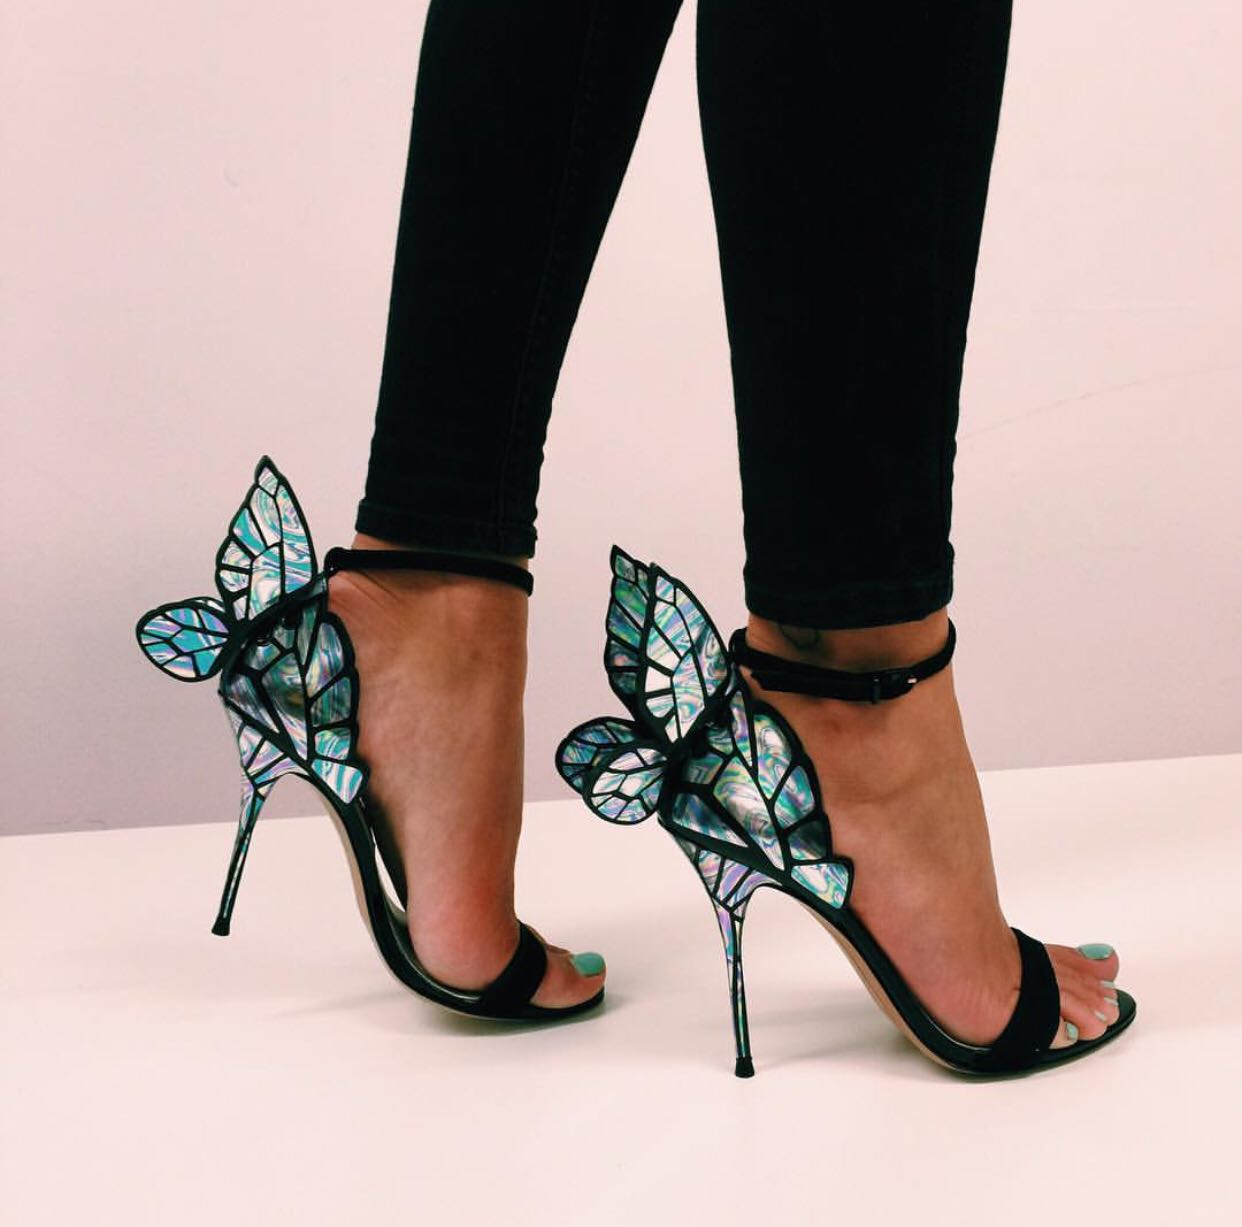 The fairy Leather Women Sandals Heels Sweet Butterfly Casual Shoes,Black,3